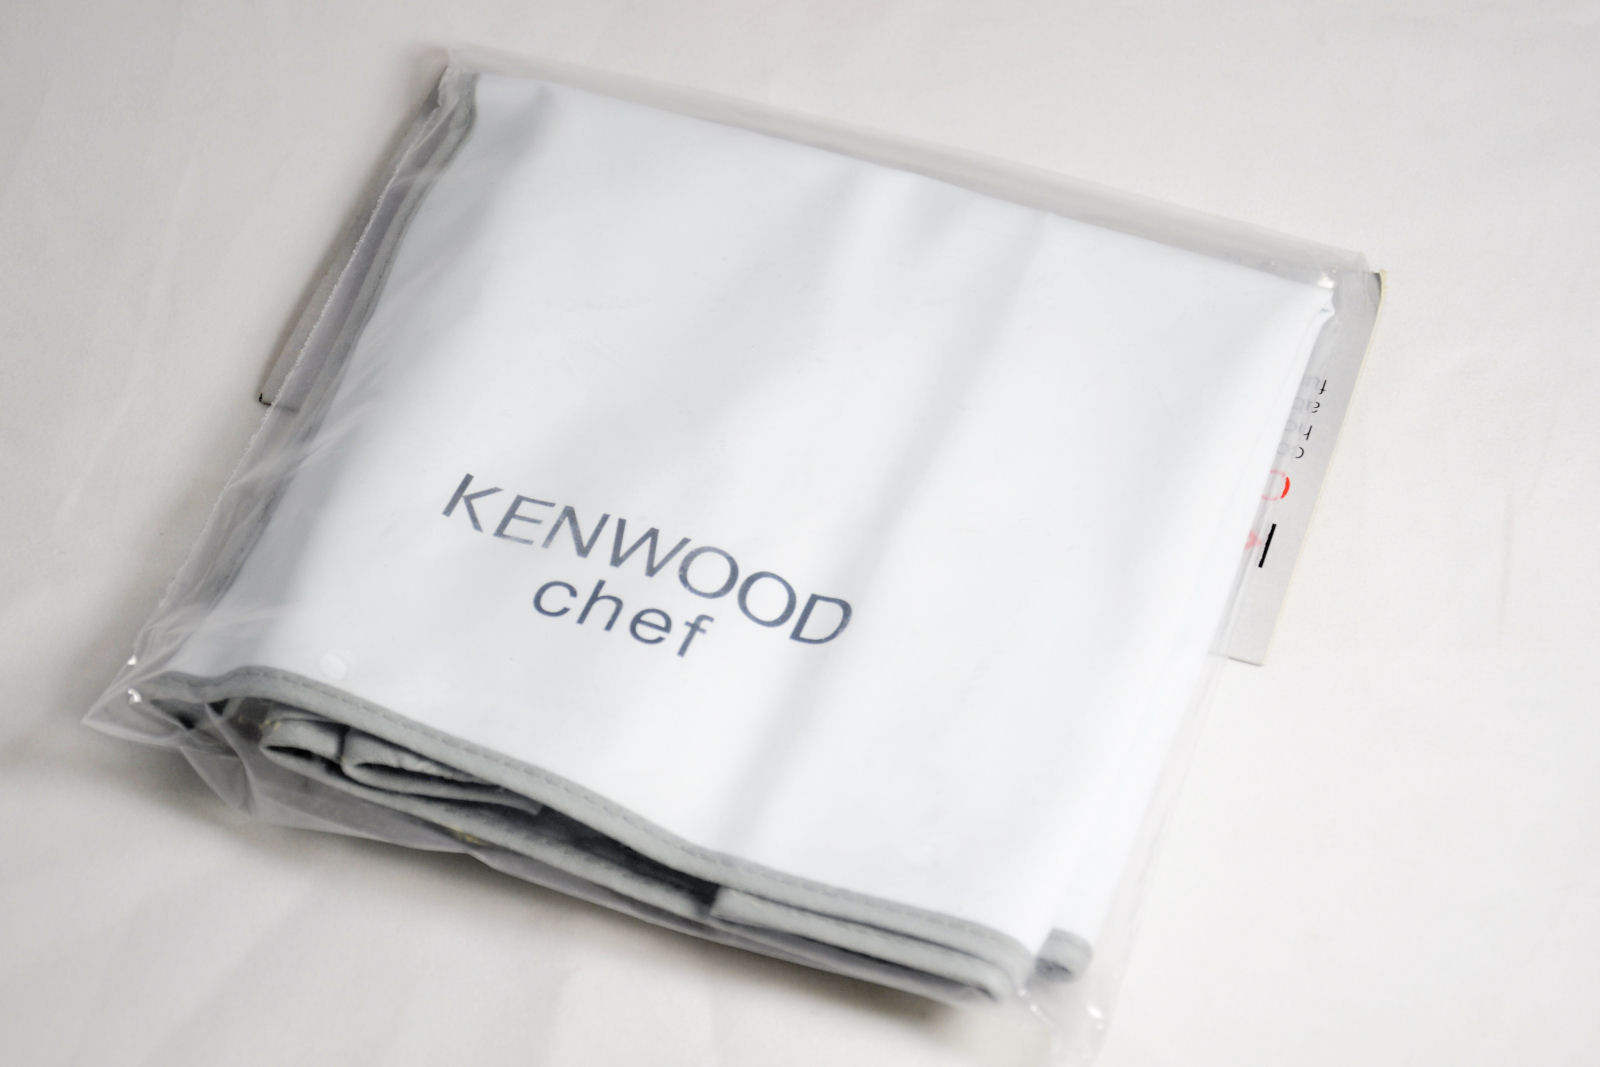 White cover for Kenwood Chef food mixers [CON.MIX.5031681573809]